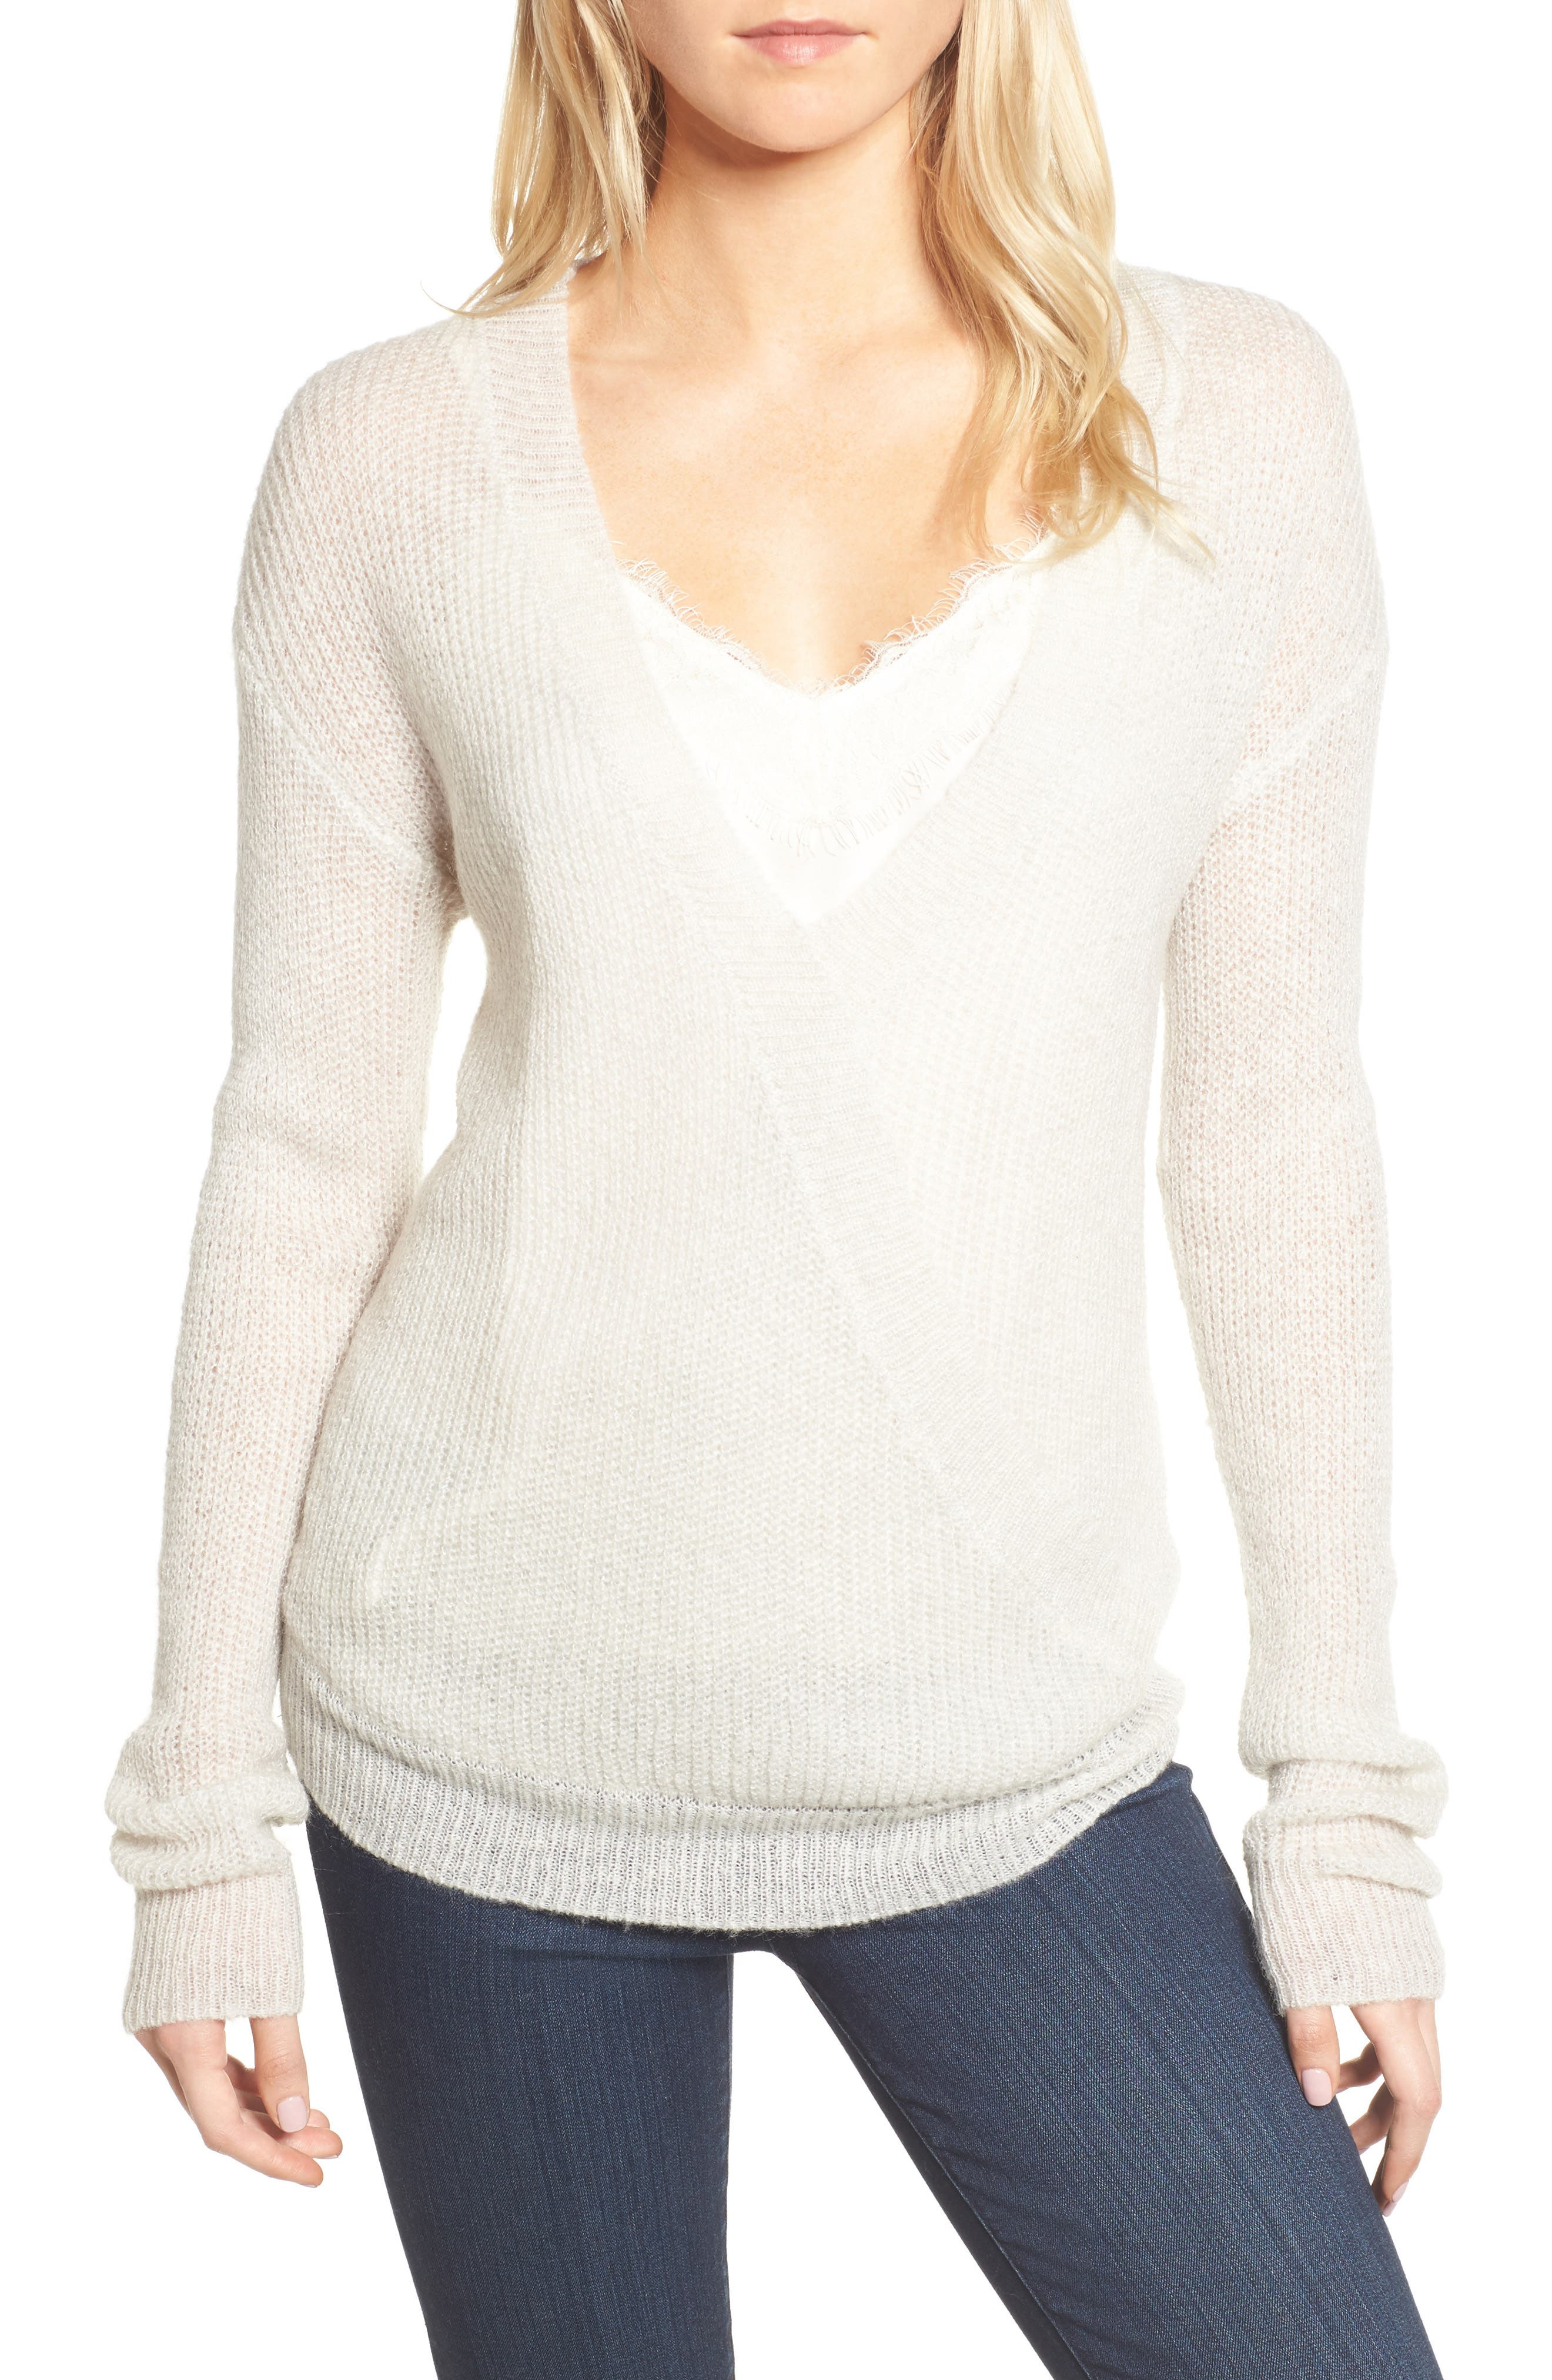 Main Image - cupcakes and cashmere Sternberg V-Neck Sweater